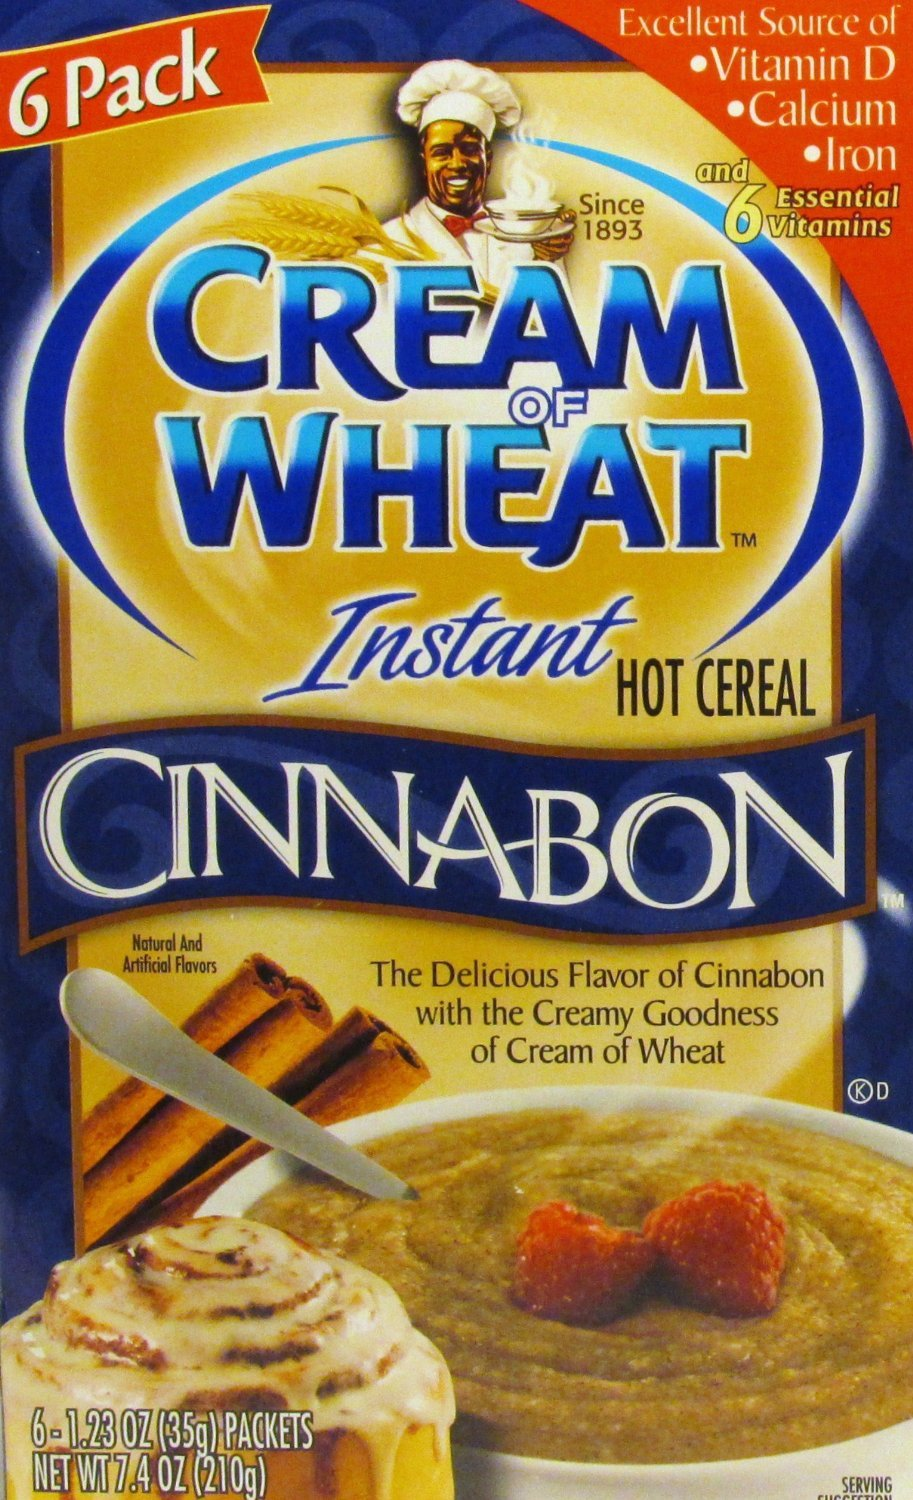 Cream Of Wheat Instant Cnnabon 6-1.23 Ounce Packets Per Box (Pack of 3 Boxes)